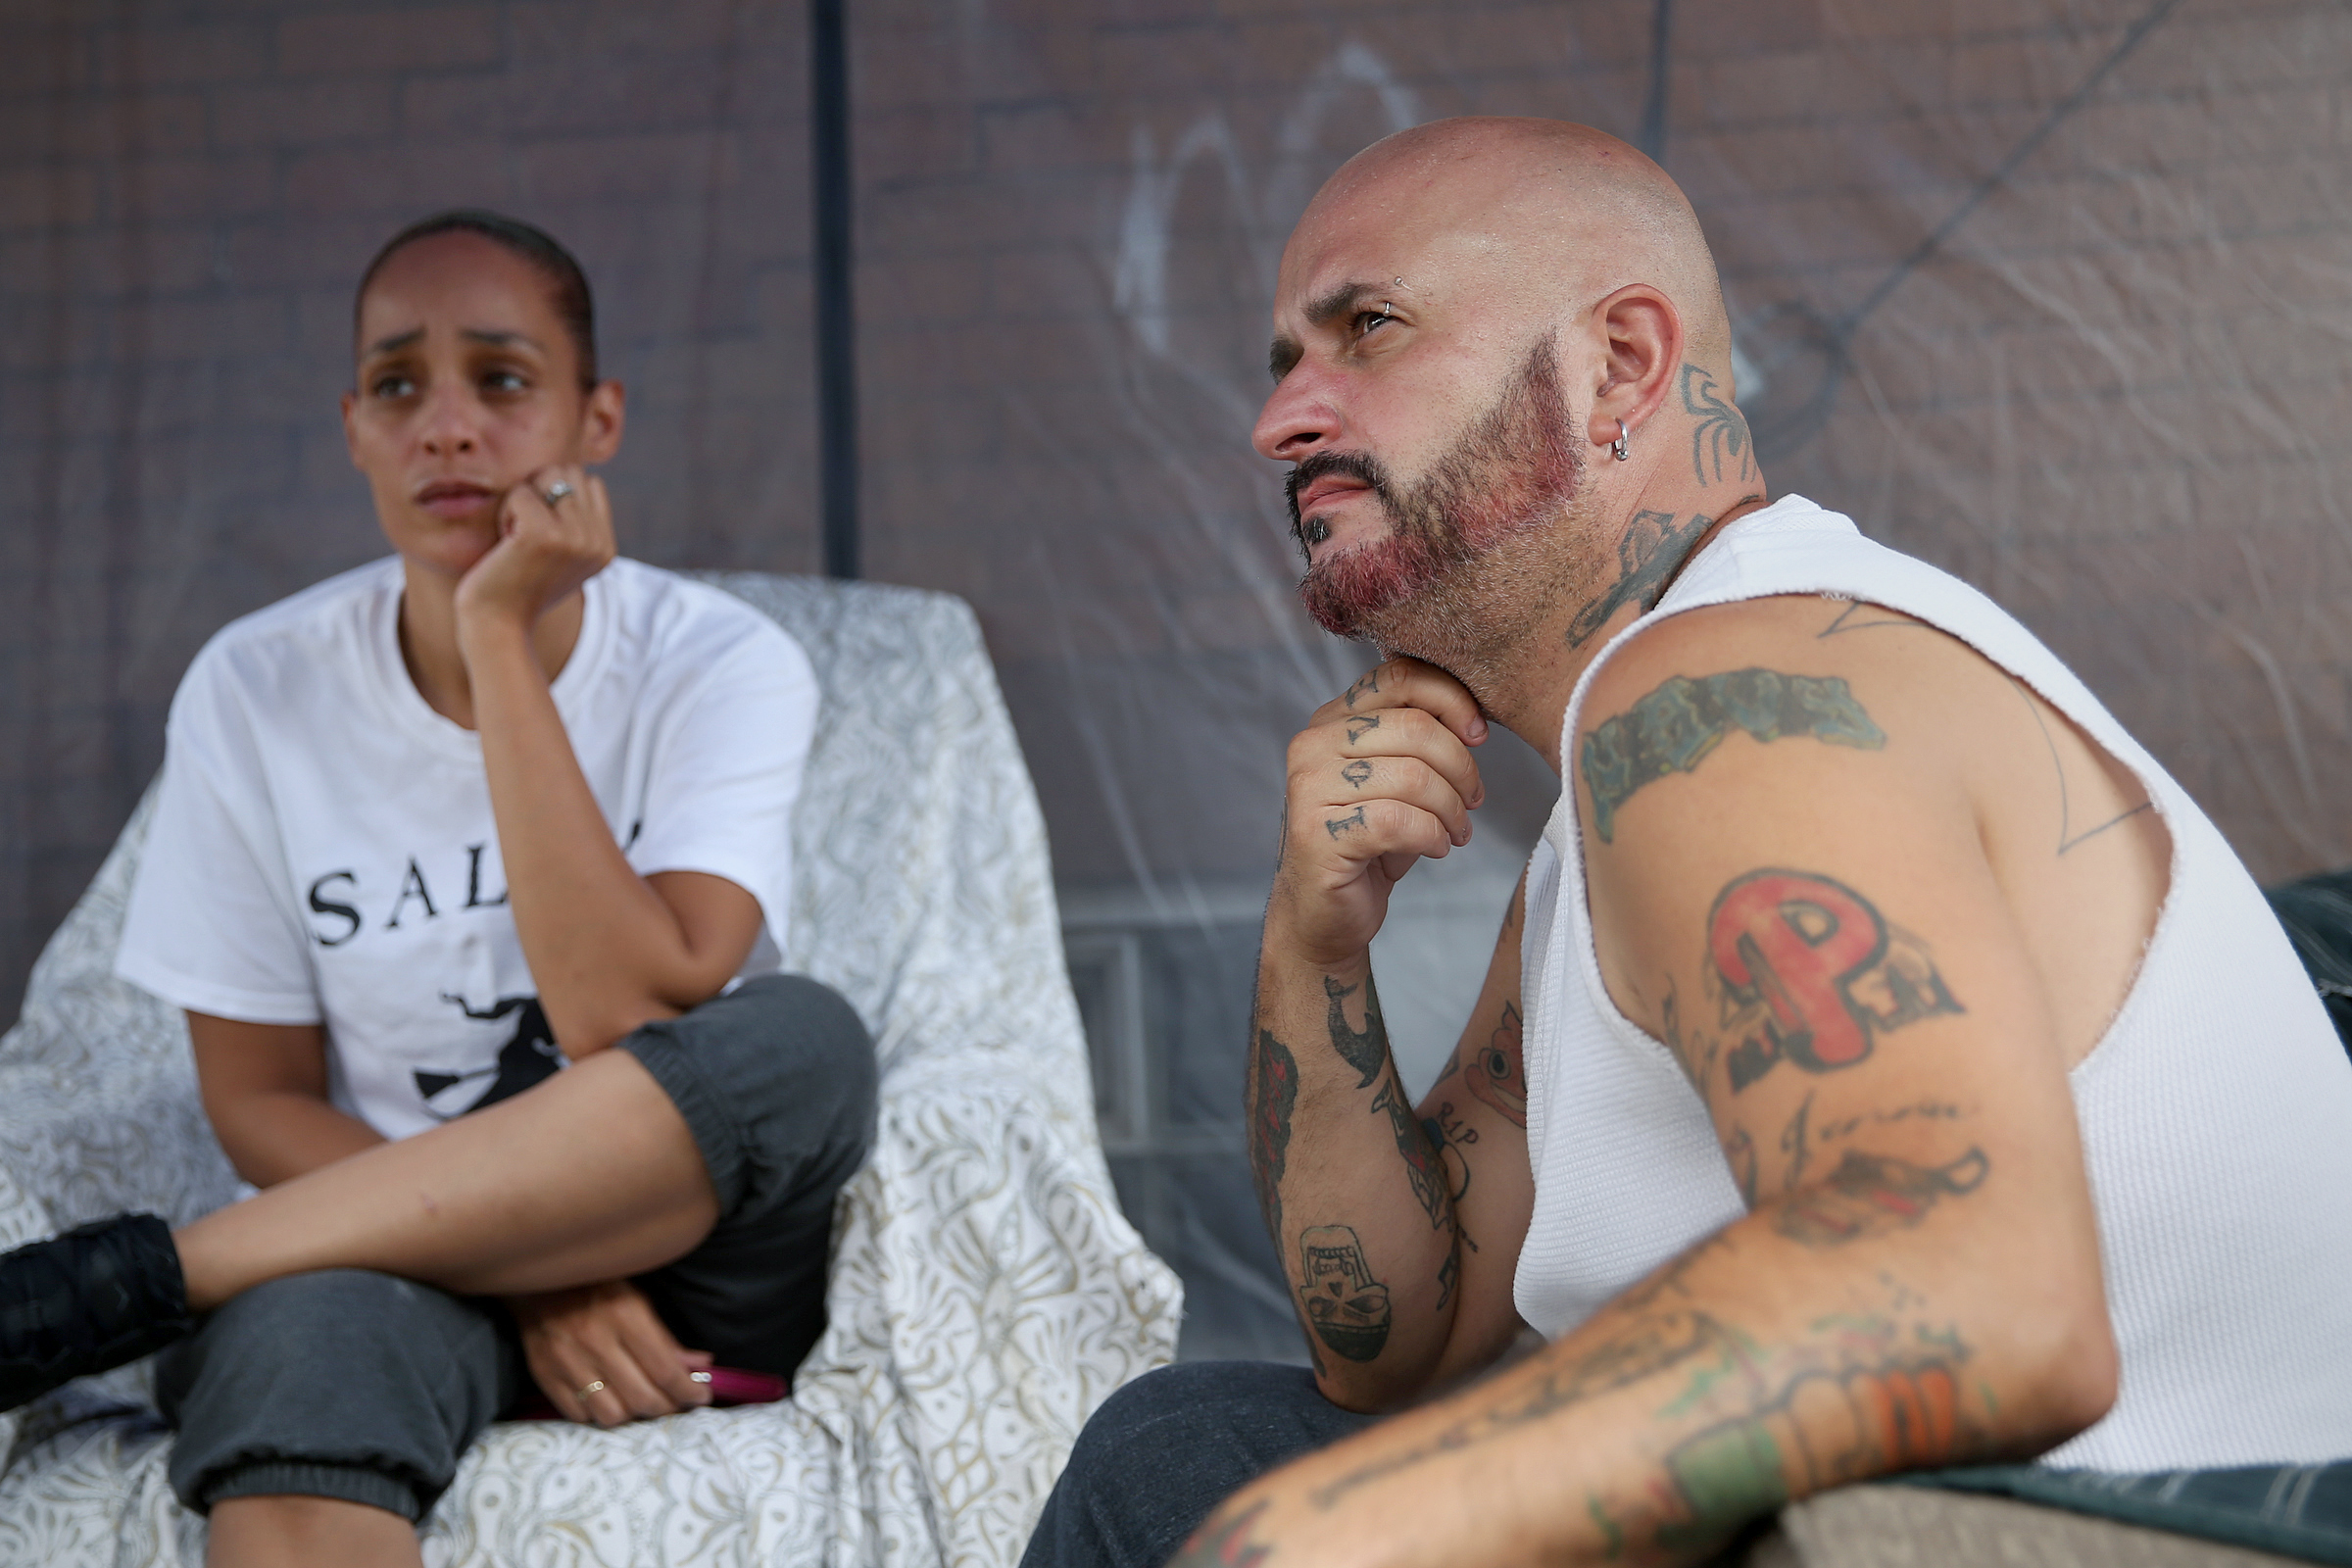 Sitting outside their Port Richmond home on Thursday, Aug. 2, Jennifer Tart, left, and her husband, Jason Rash, recounted the horror Wednesday when pit bulls attacked a toddler inside another home on their block.